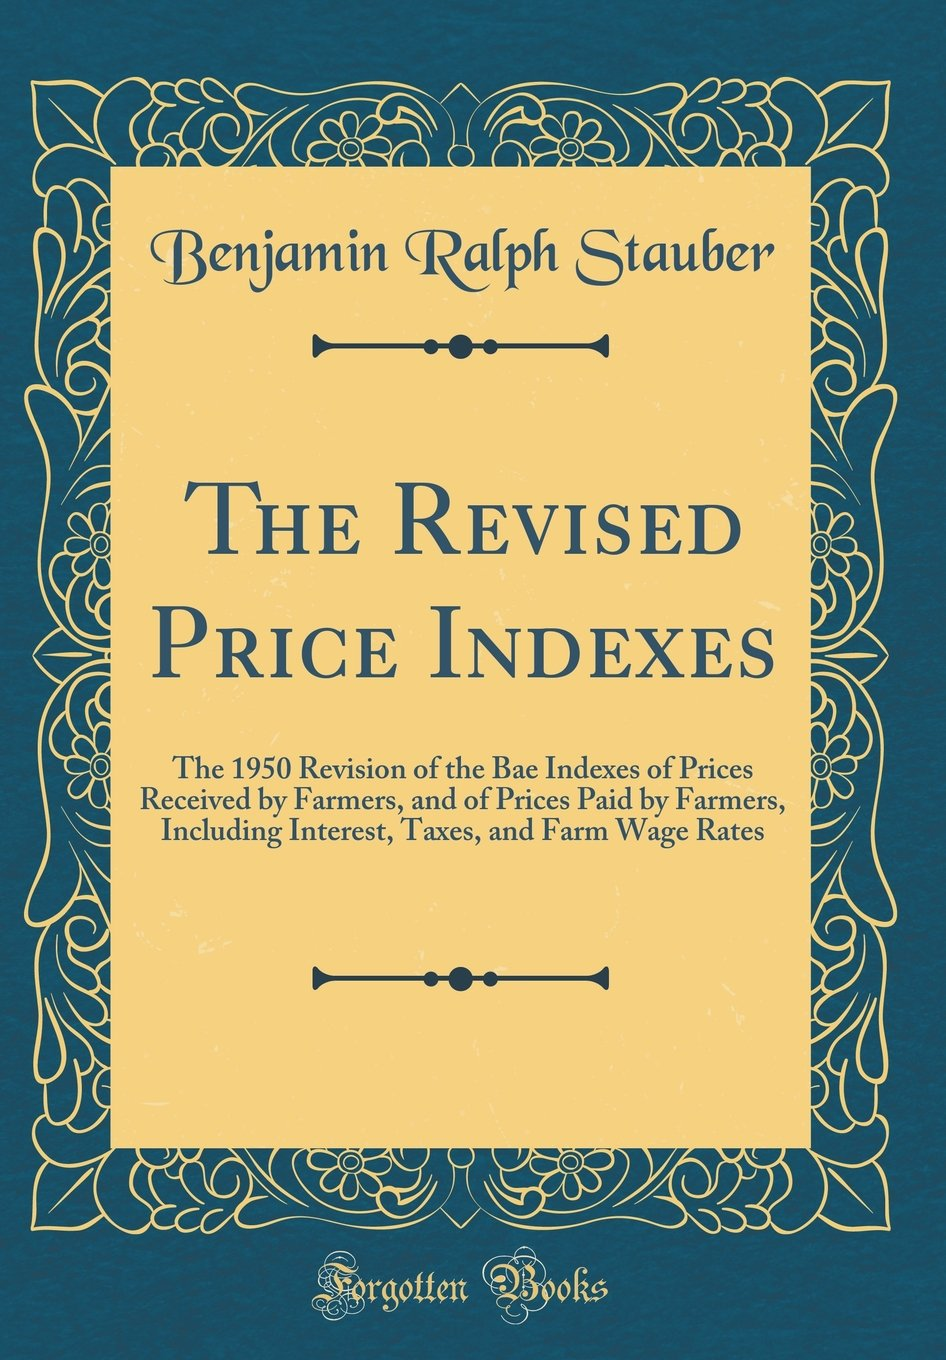 Read Online The Revised Price Indexes: The 1950 Revision of the Bae Indexes of Prices Received by Farmers, and of Prices Paid by Farmers, Including Interest, Taxes, and Farm Wage Rates (Classic Reprint) PDF